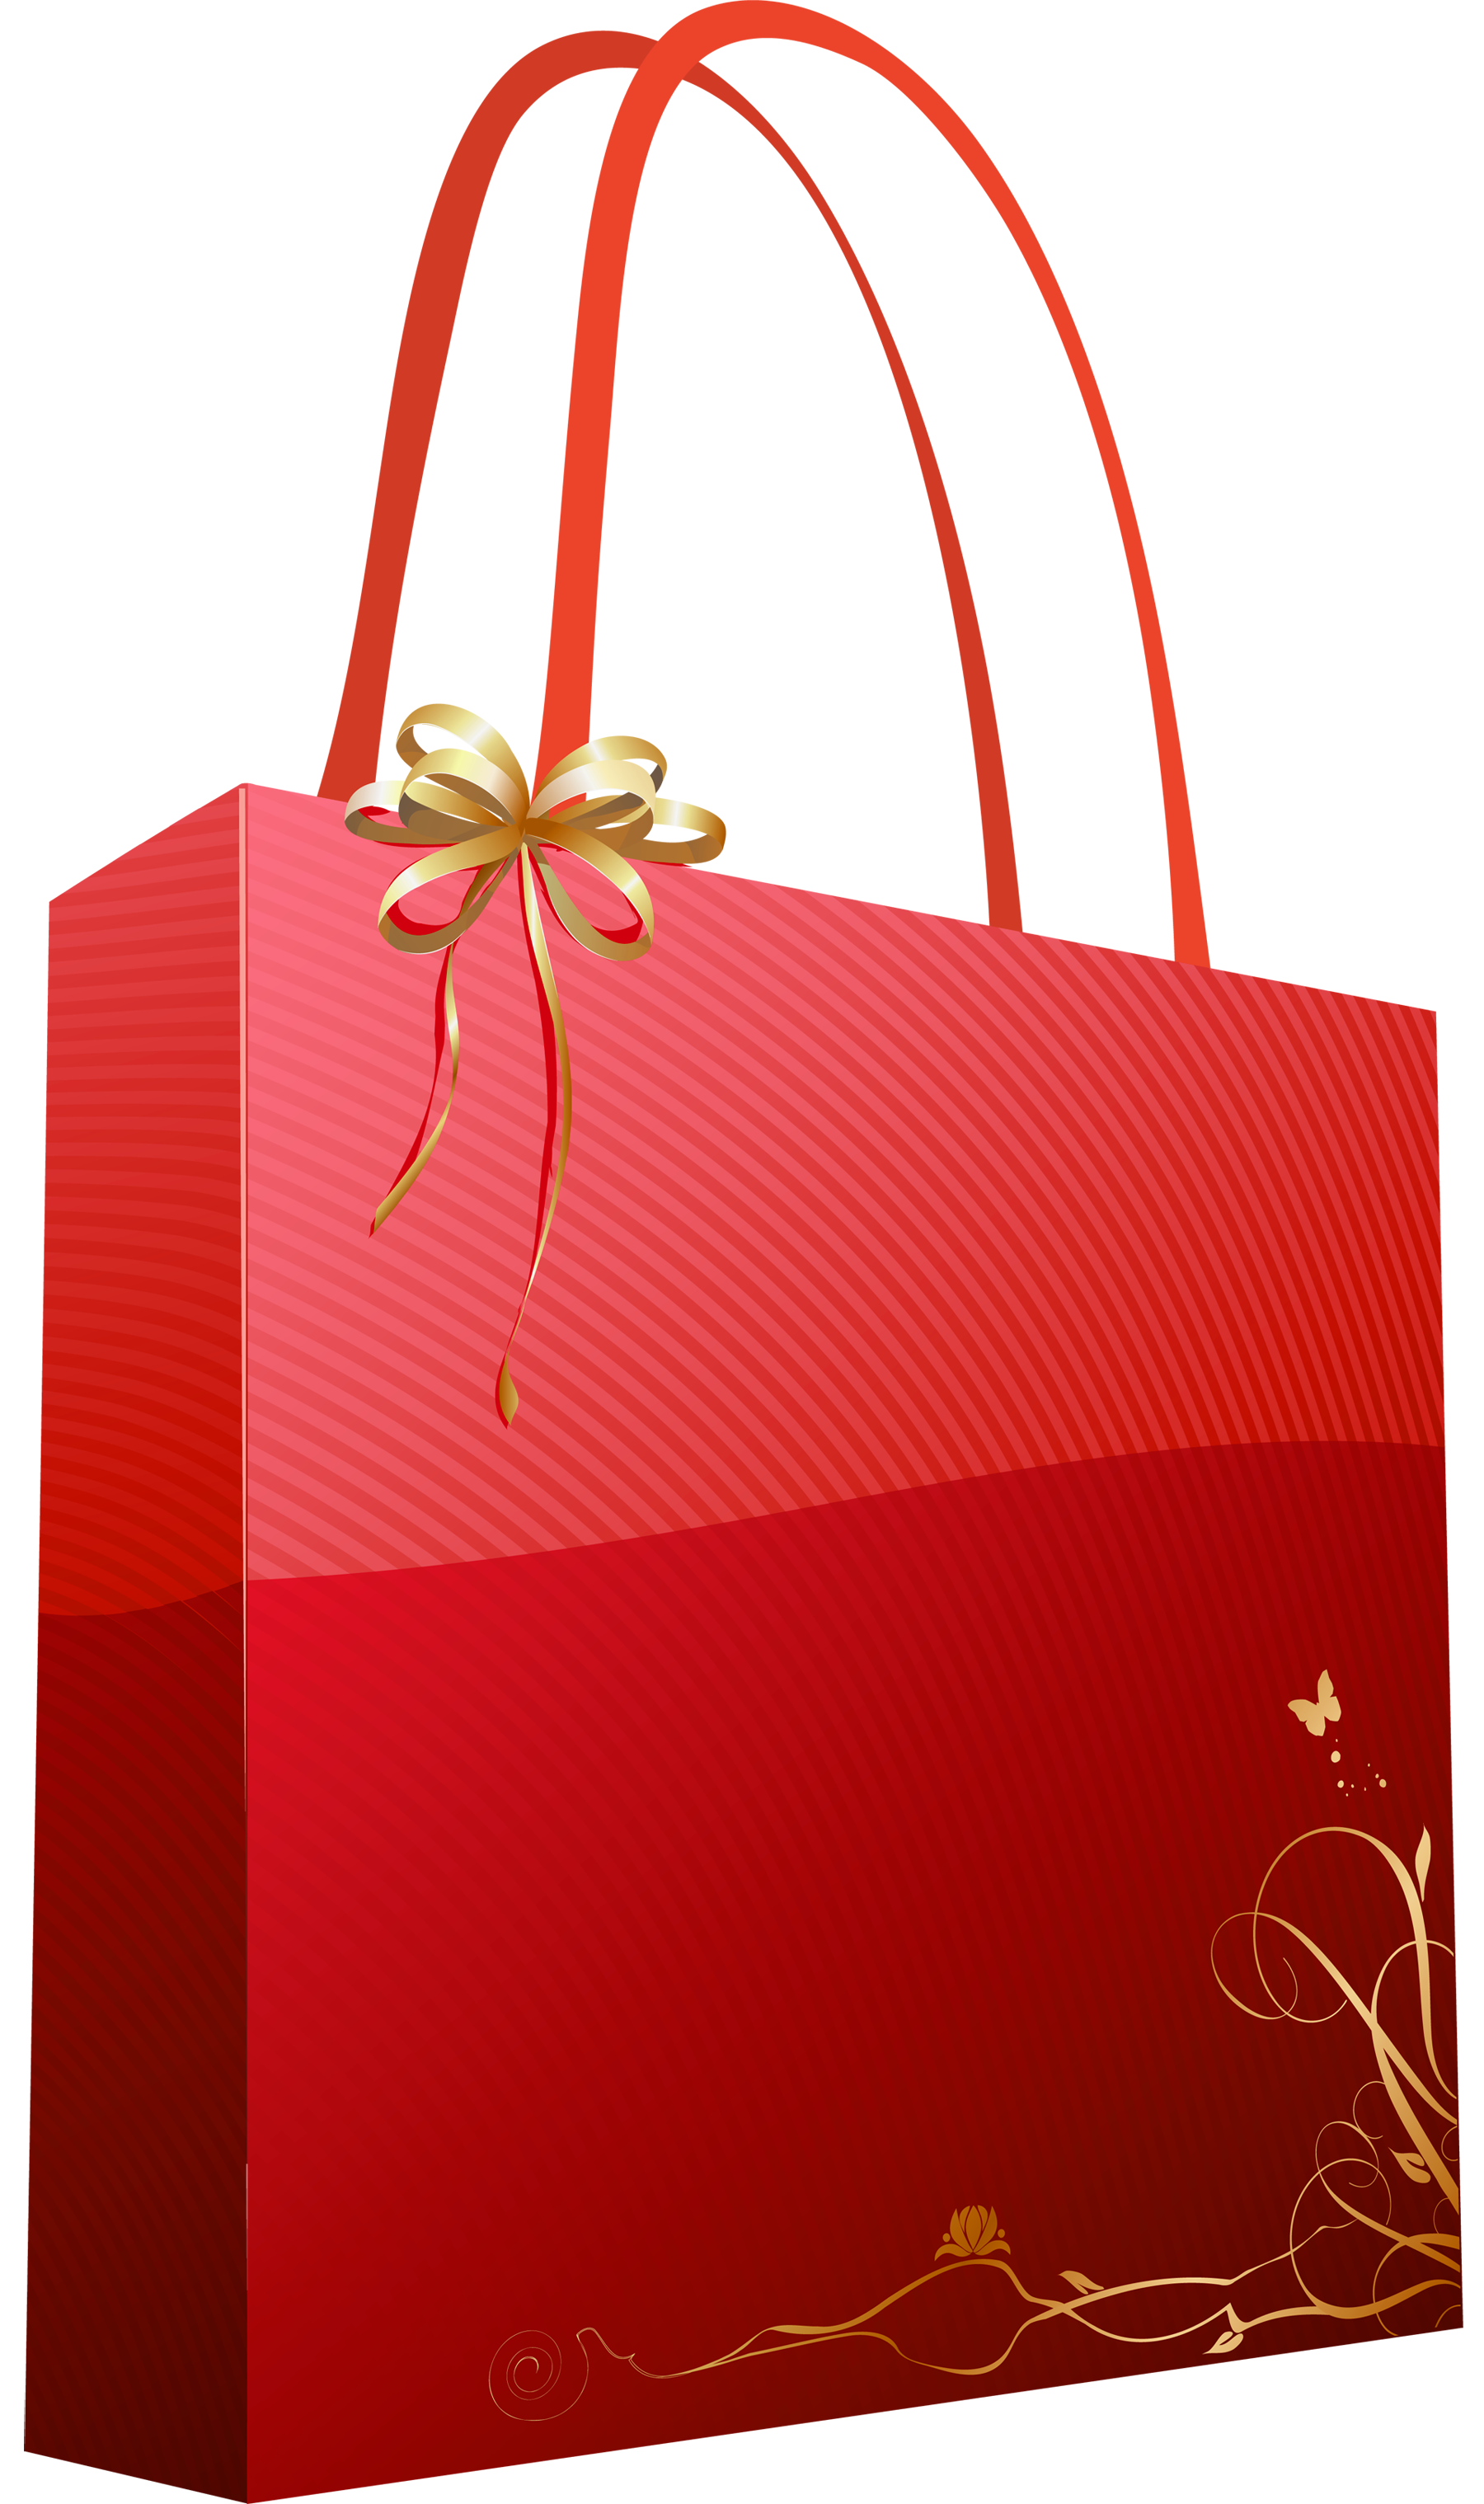 Red png giftbag picture. Gift clipart gift bag